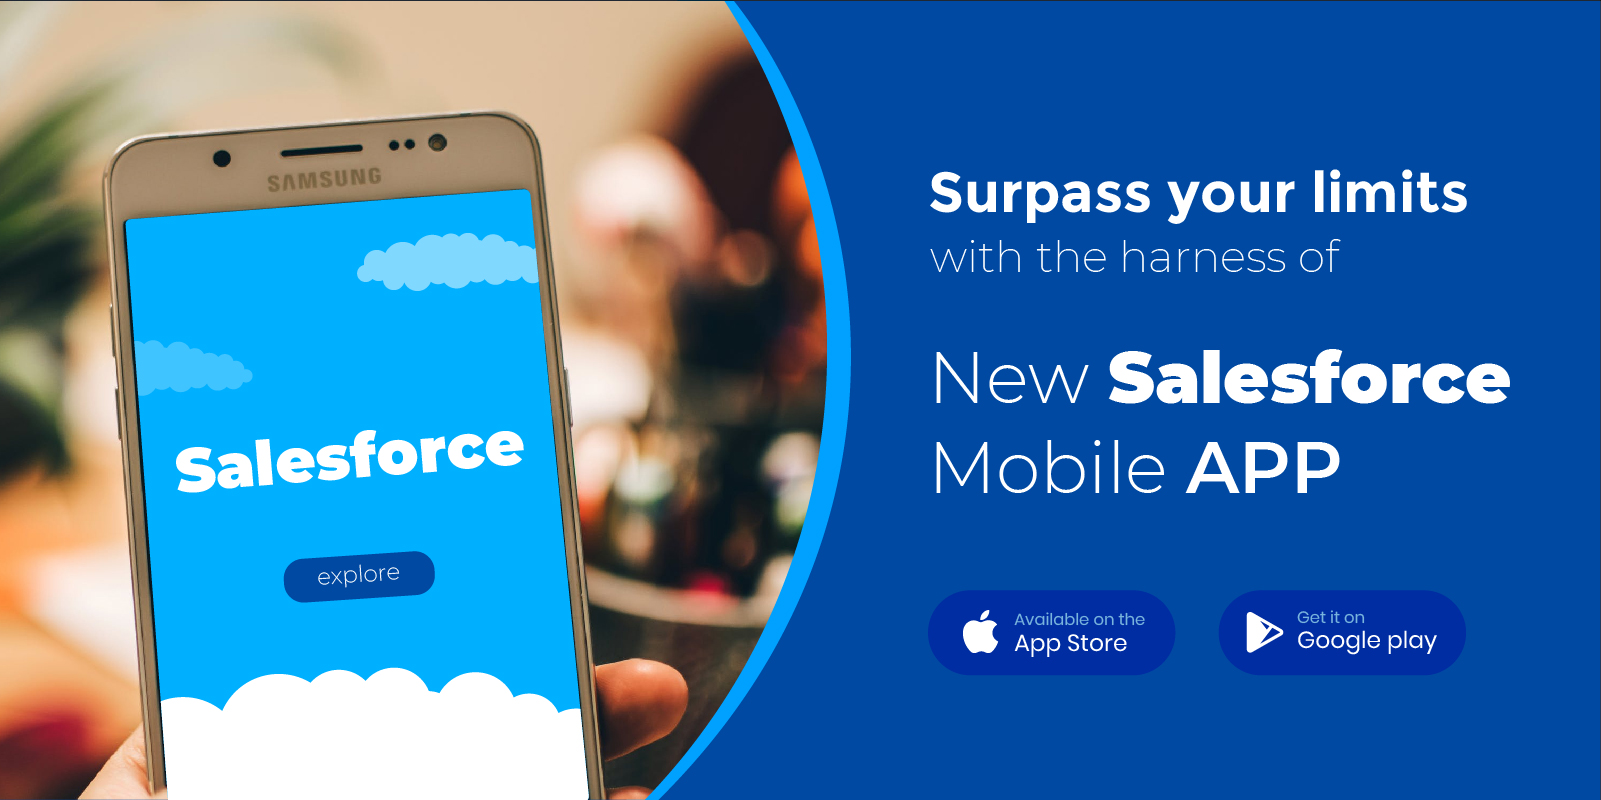 Enhanced user experience with the New Salesforce Mobile App